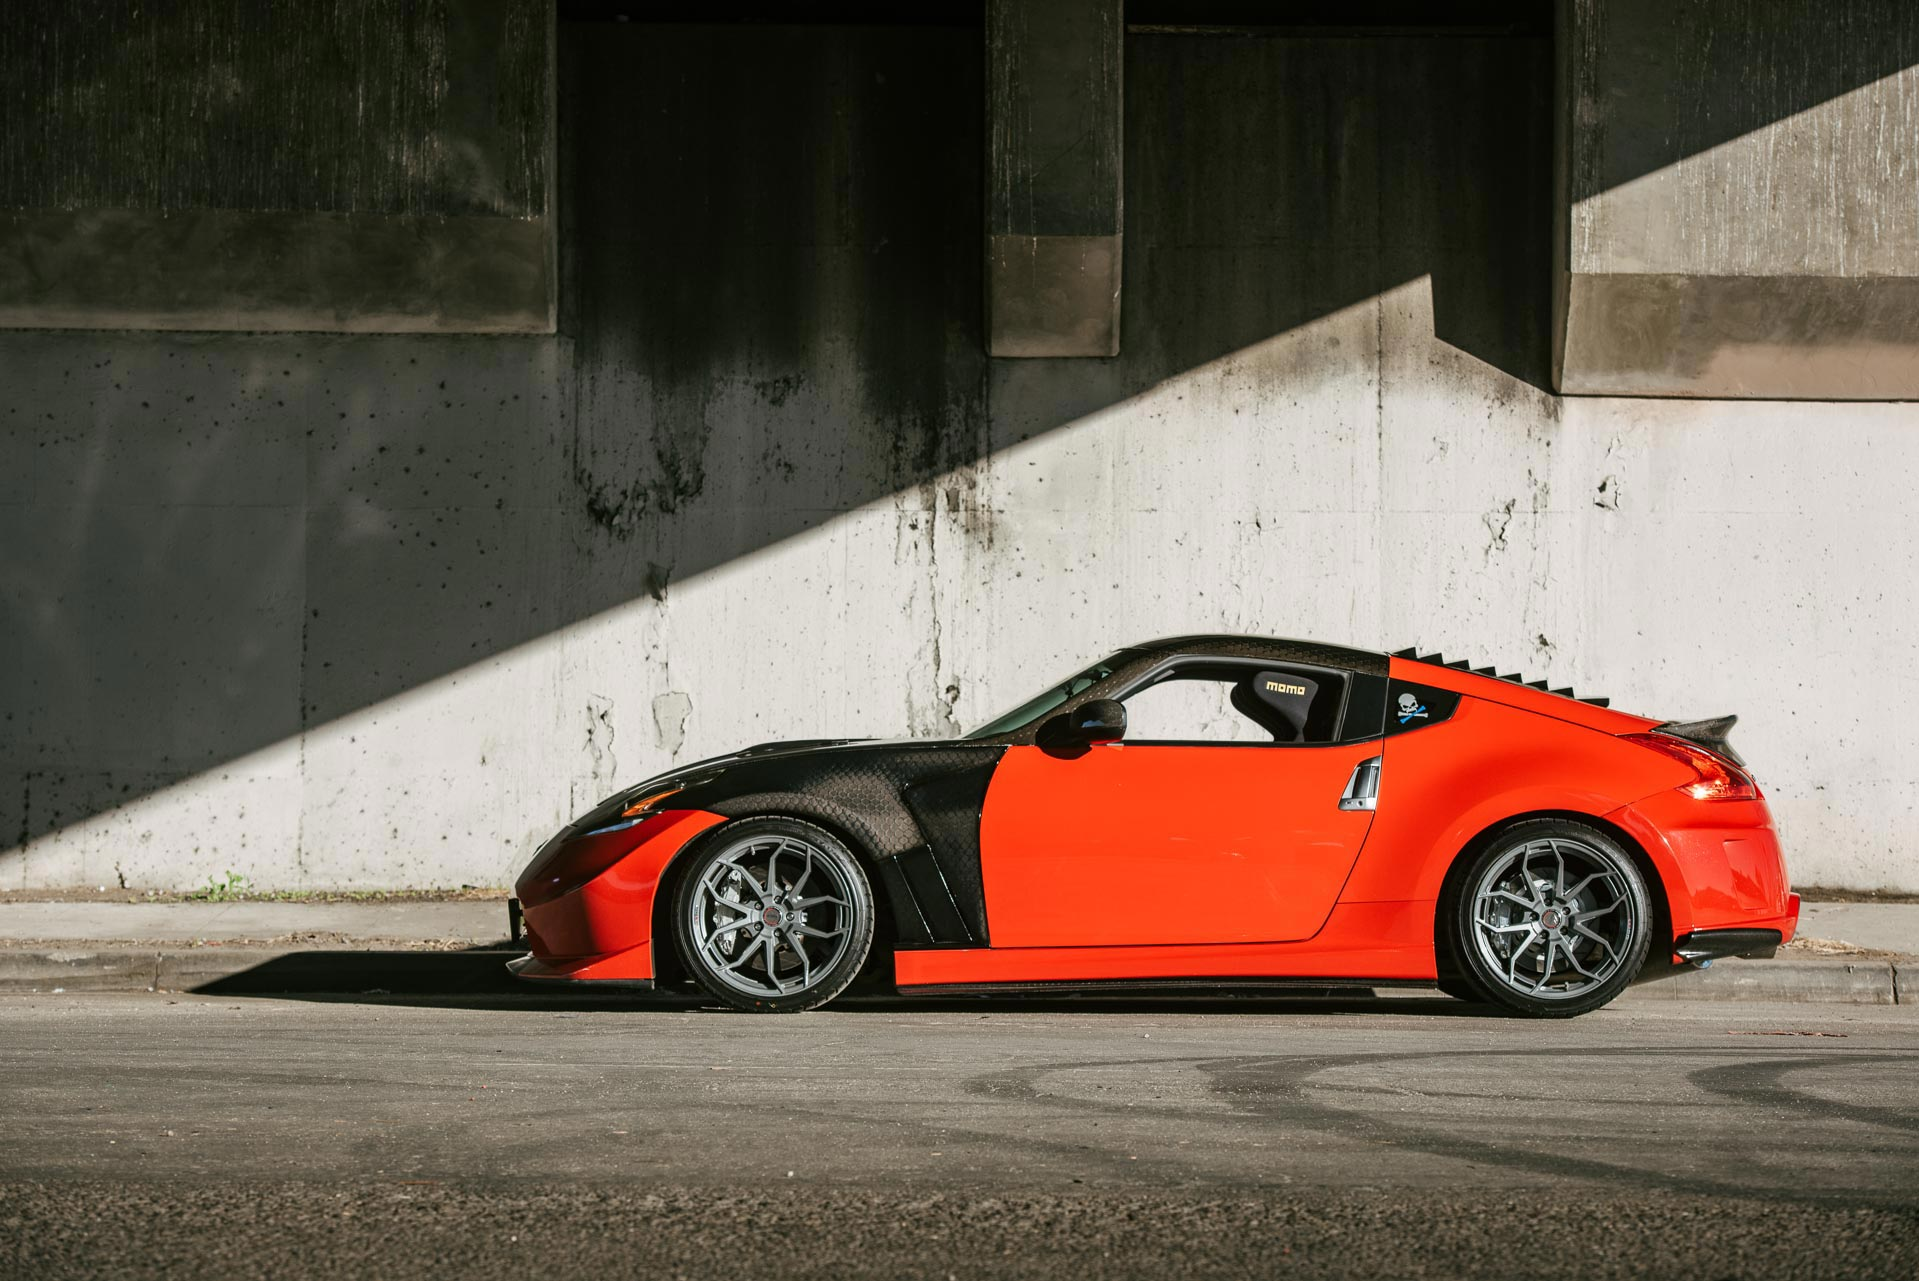 Nissan 370Z with Milestar ultra-high performance UHP tires